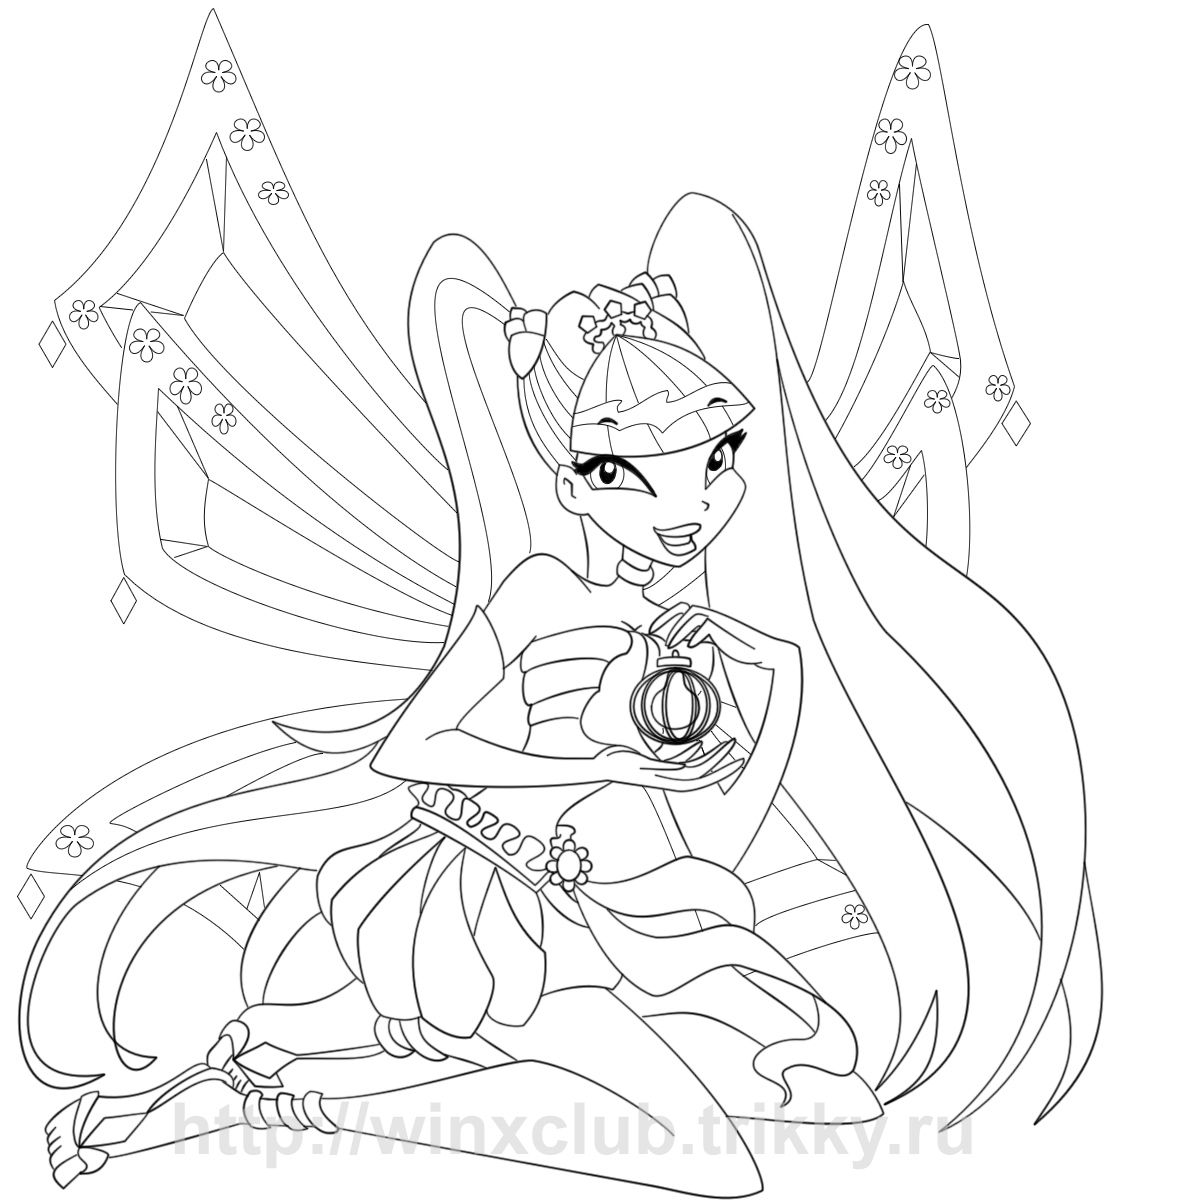 Cartoons Winx Club Coloring Pages Printable | coloring ...